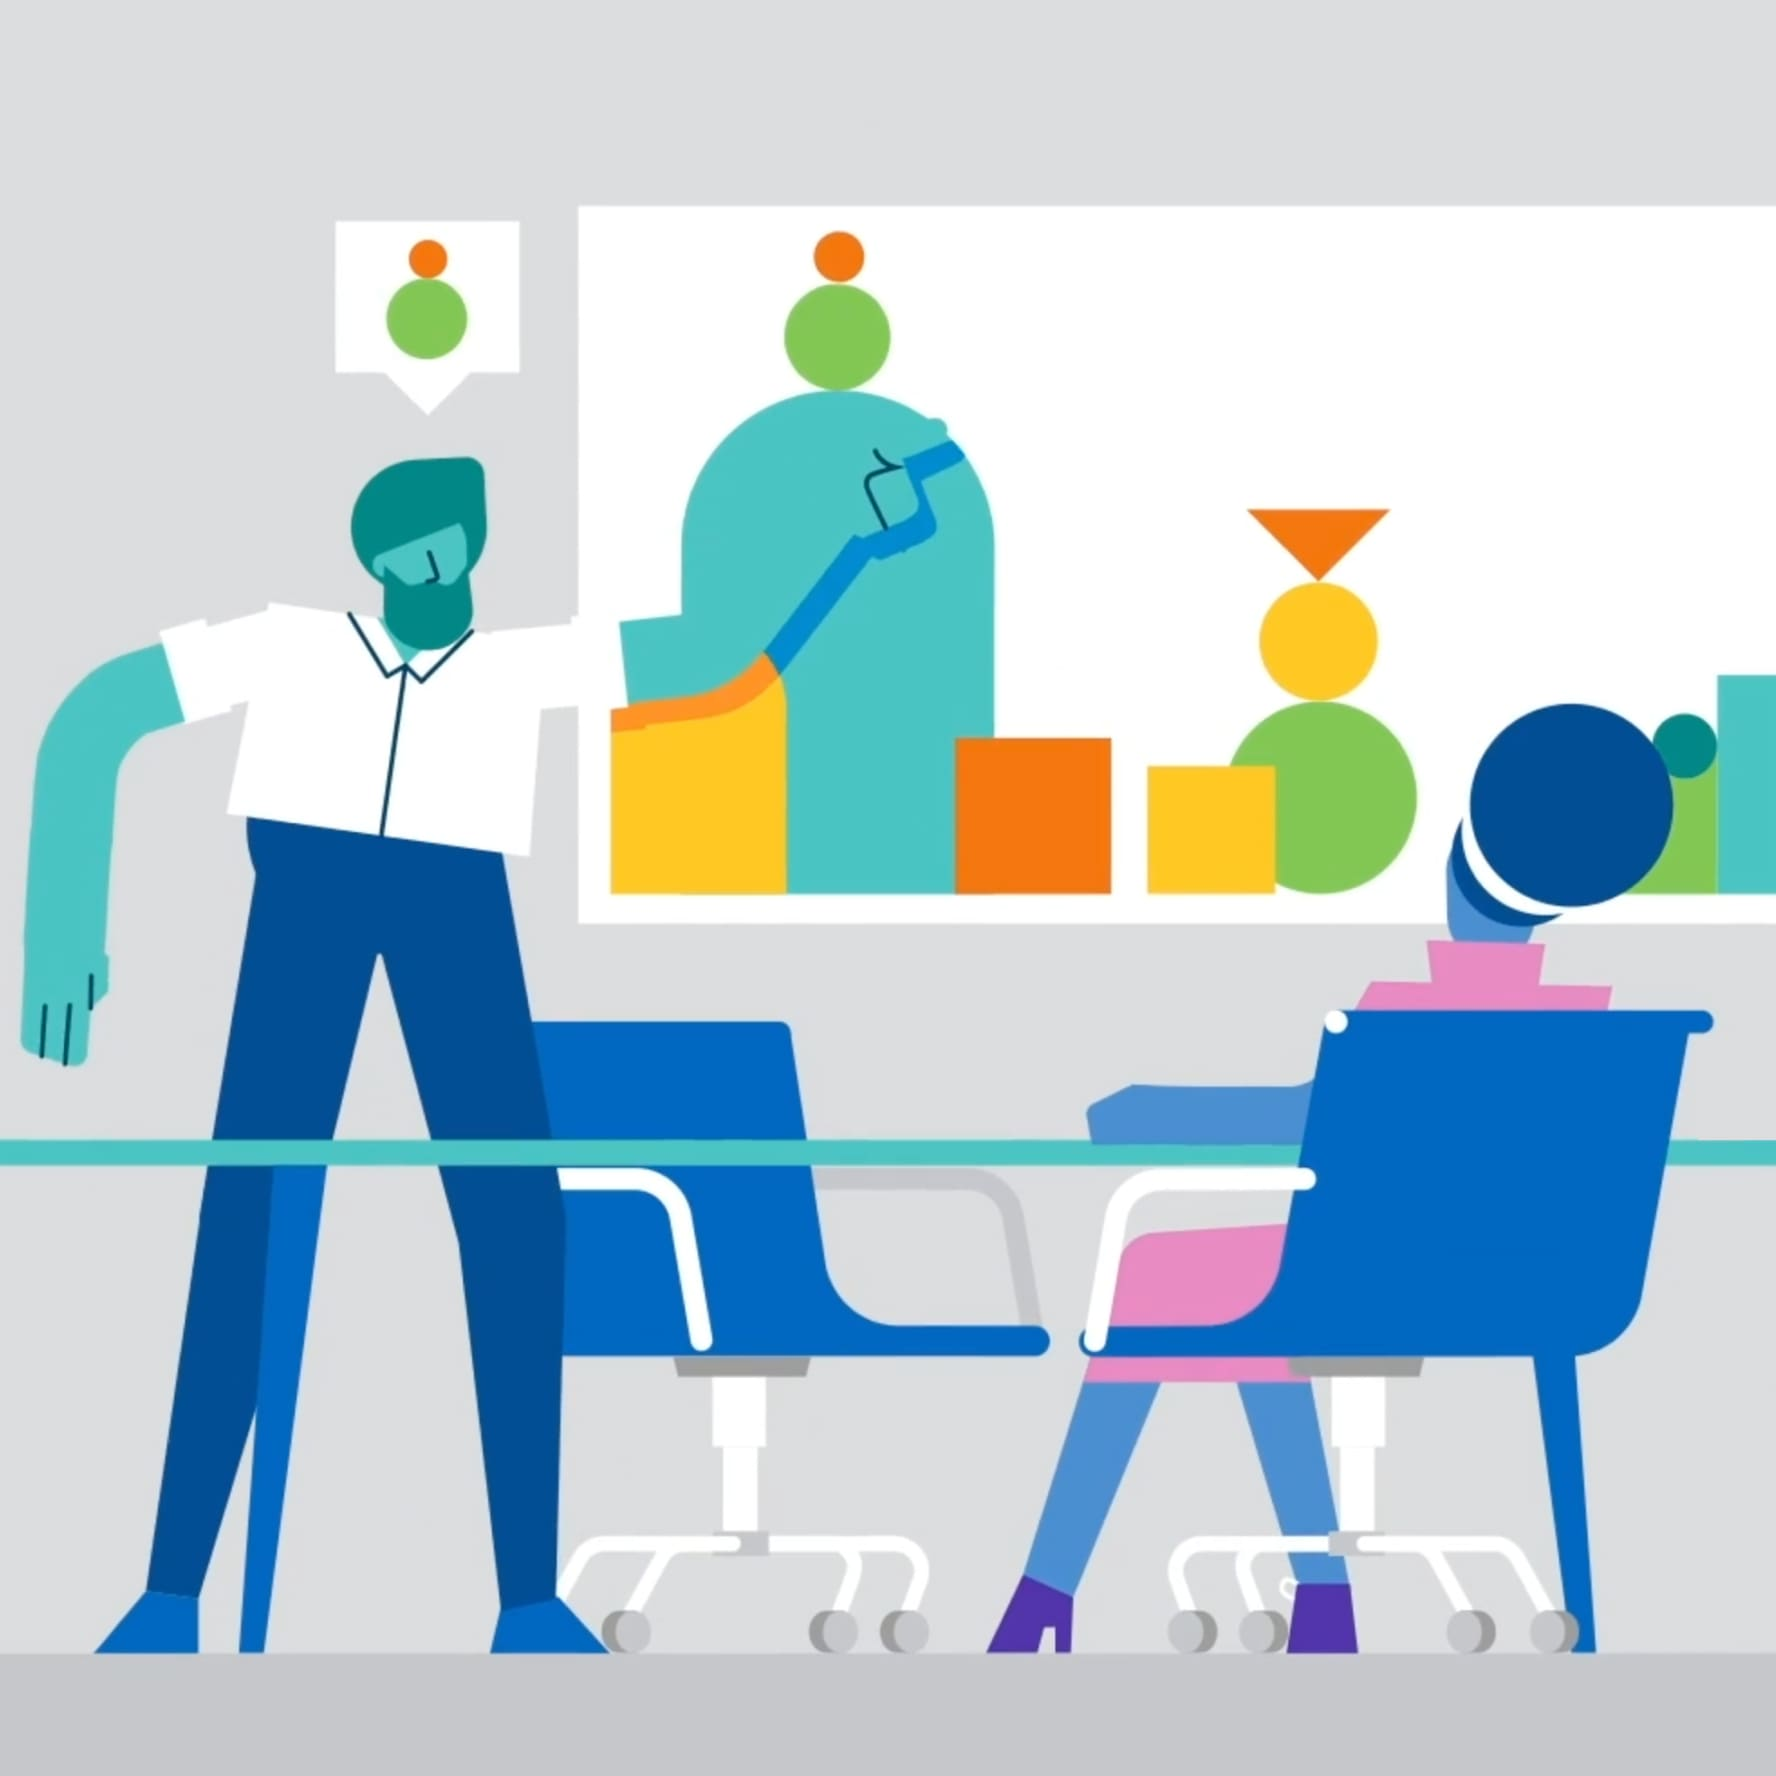 """Screenshot of the """"What we do"""" video showing flat illustration style characters in a board room."""